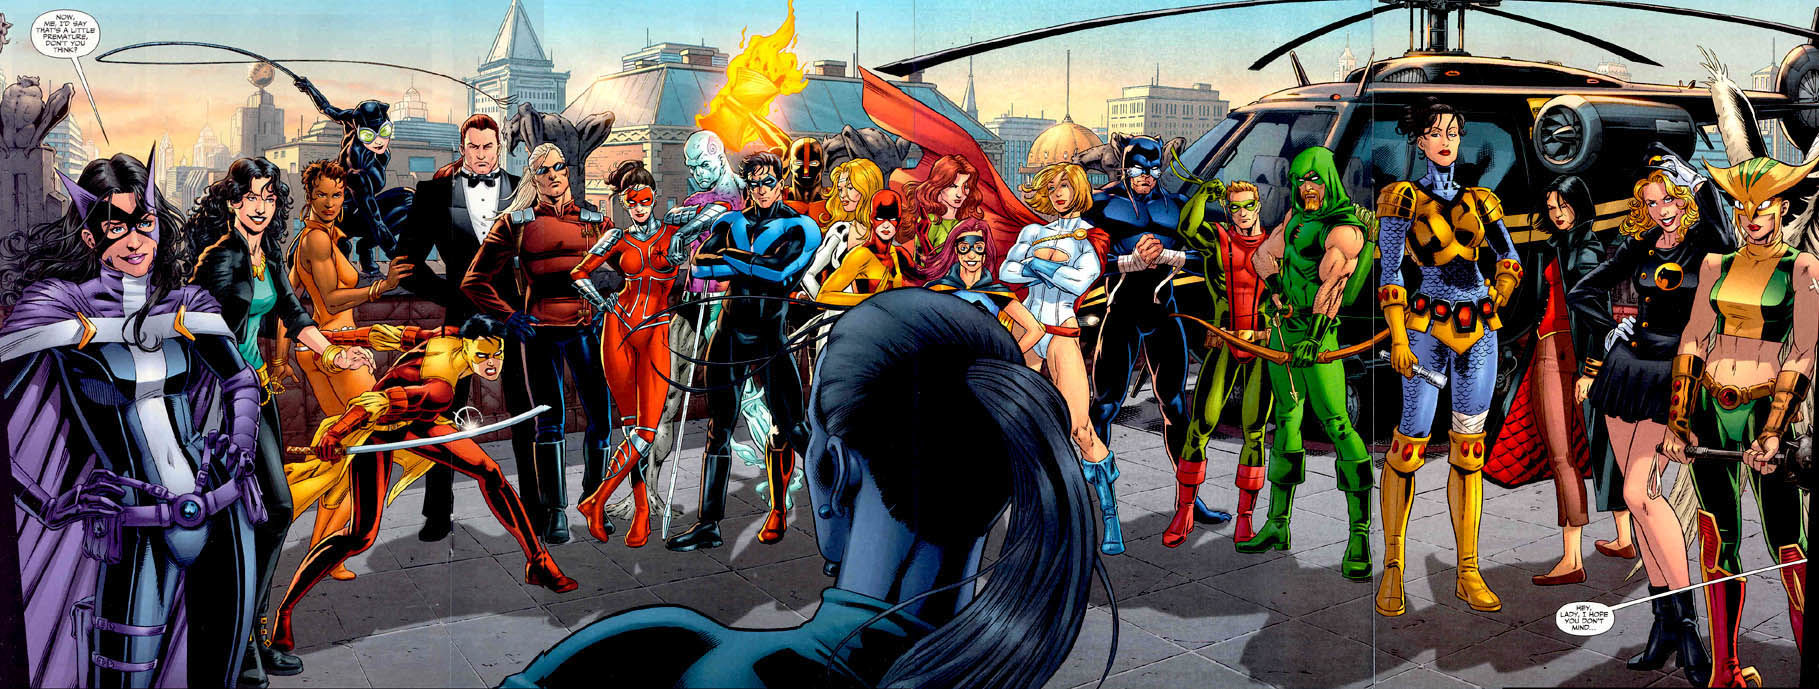 9 Things The Birds Of Prey Movie Should Take From The Comics